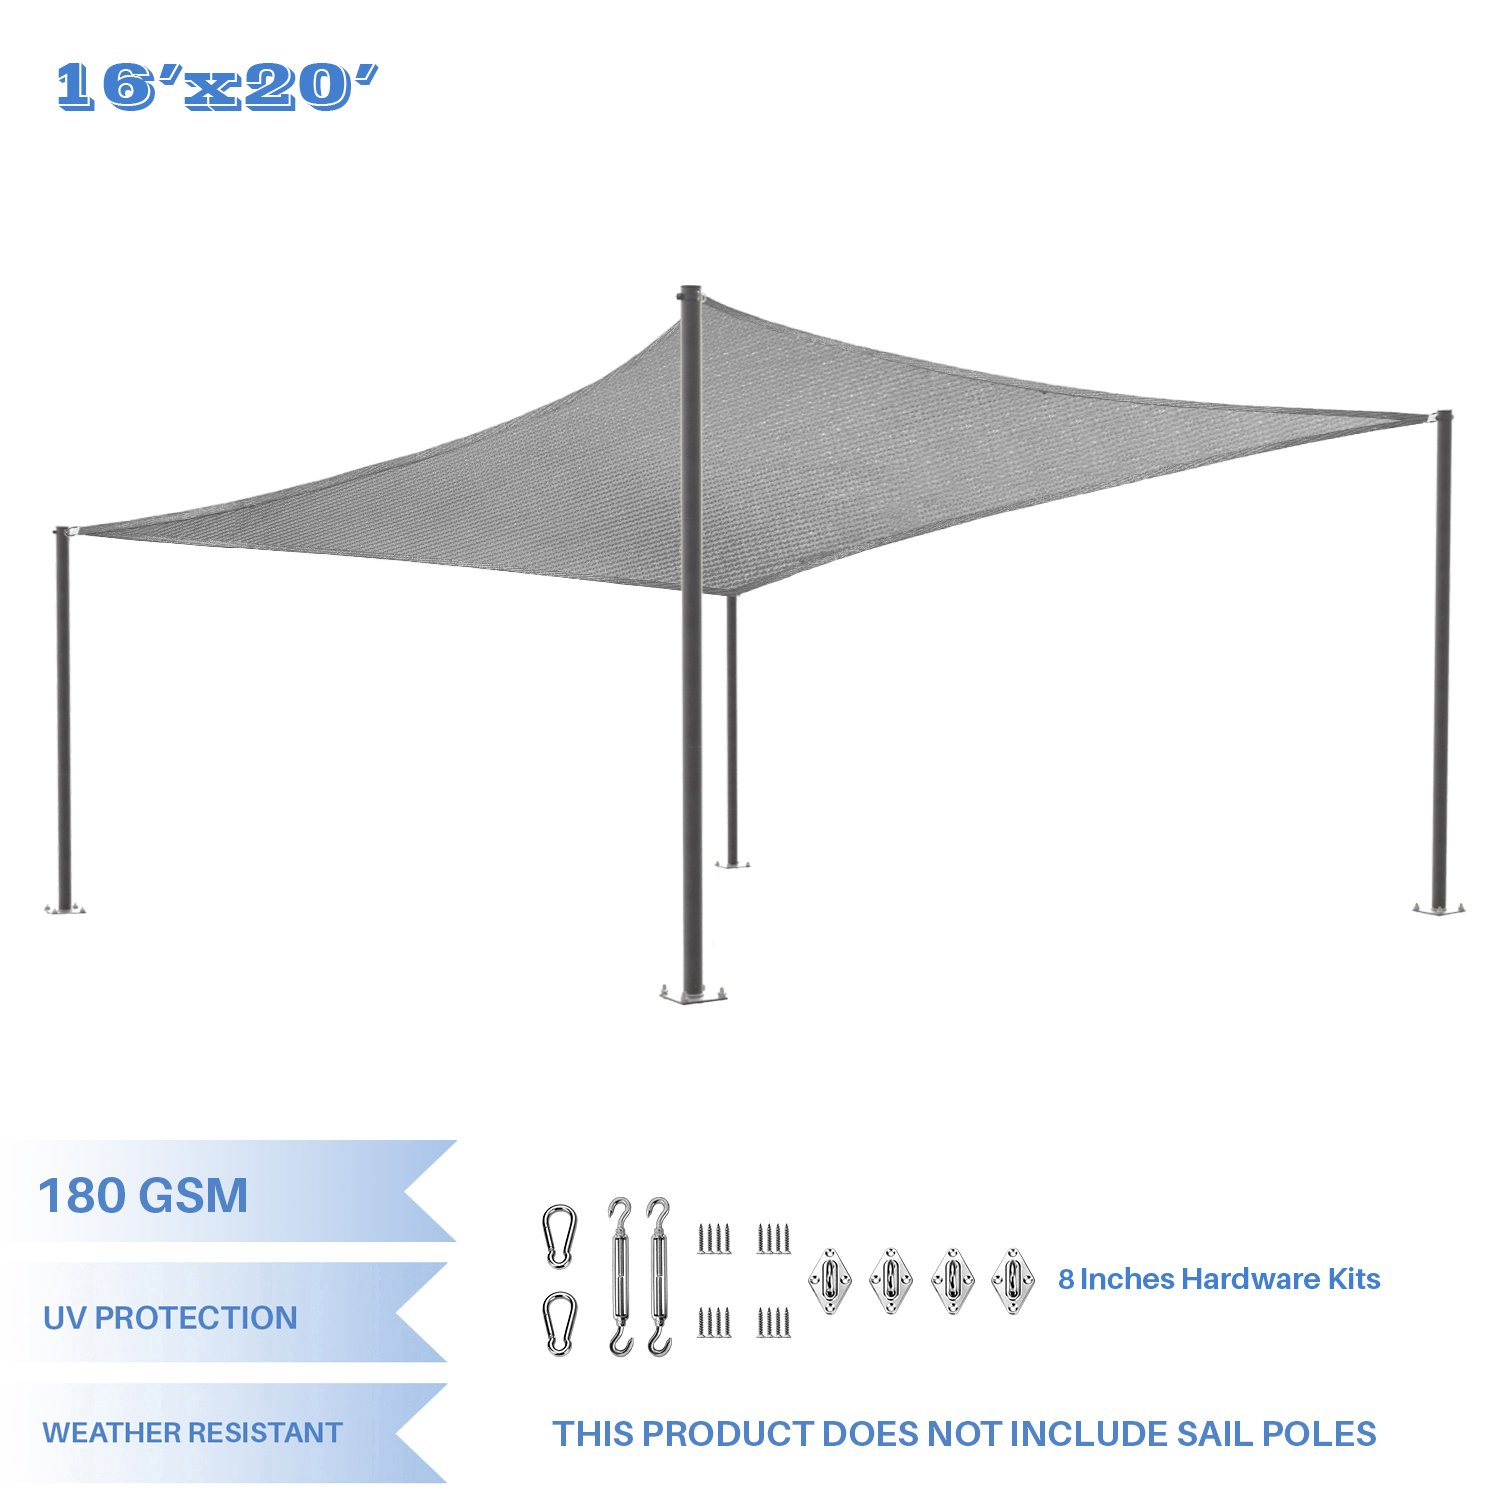 E&K Sunrise 16' x 20' Light Gray Rectangle Sun Shade Sail Stainless Steel Hardware Kit Outdoor Shade Cloth UV Block Fabric,Curve Edge-Customized